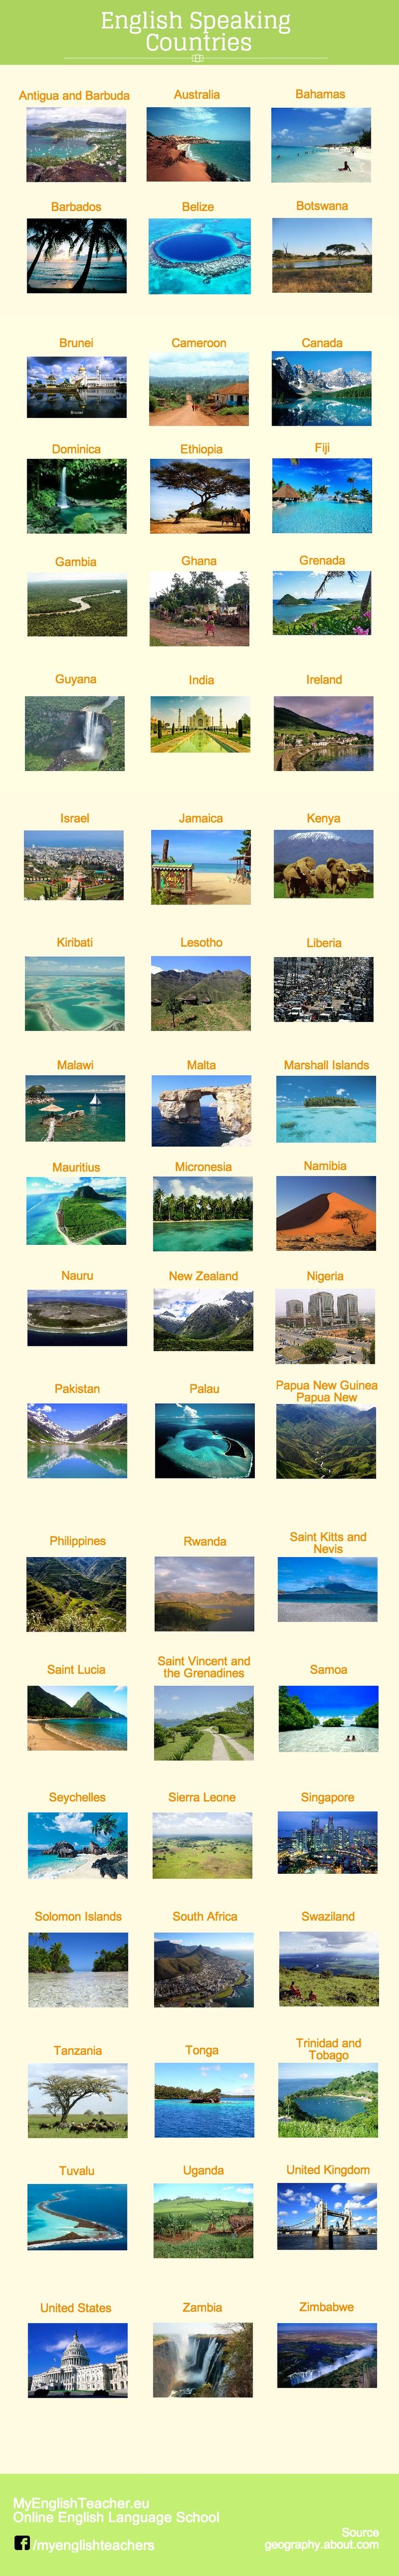 Discover English speaking countries! See the images in one big #Infographic!